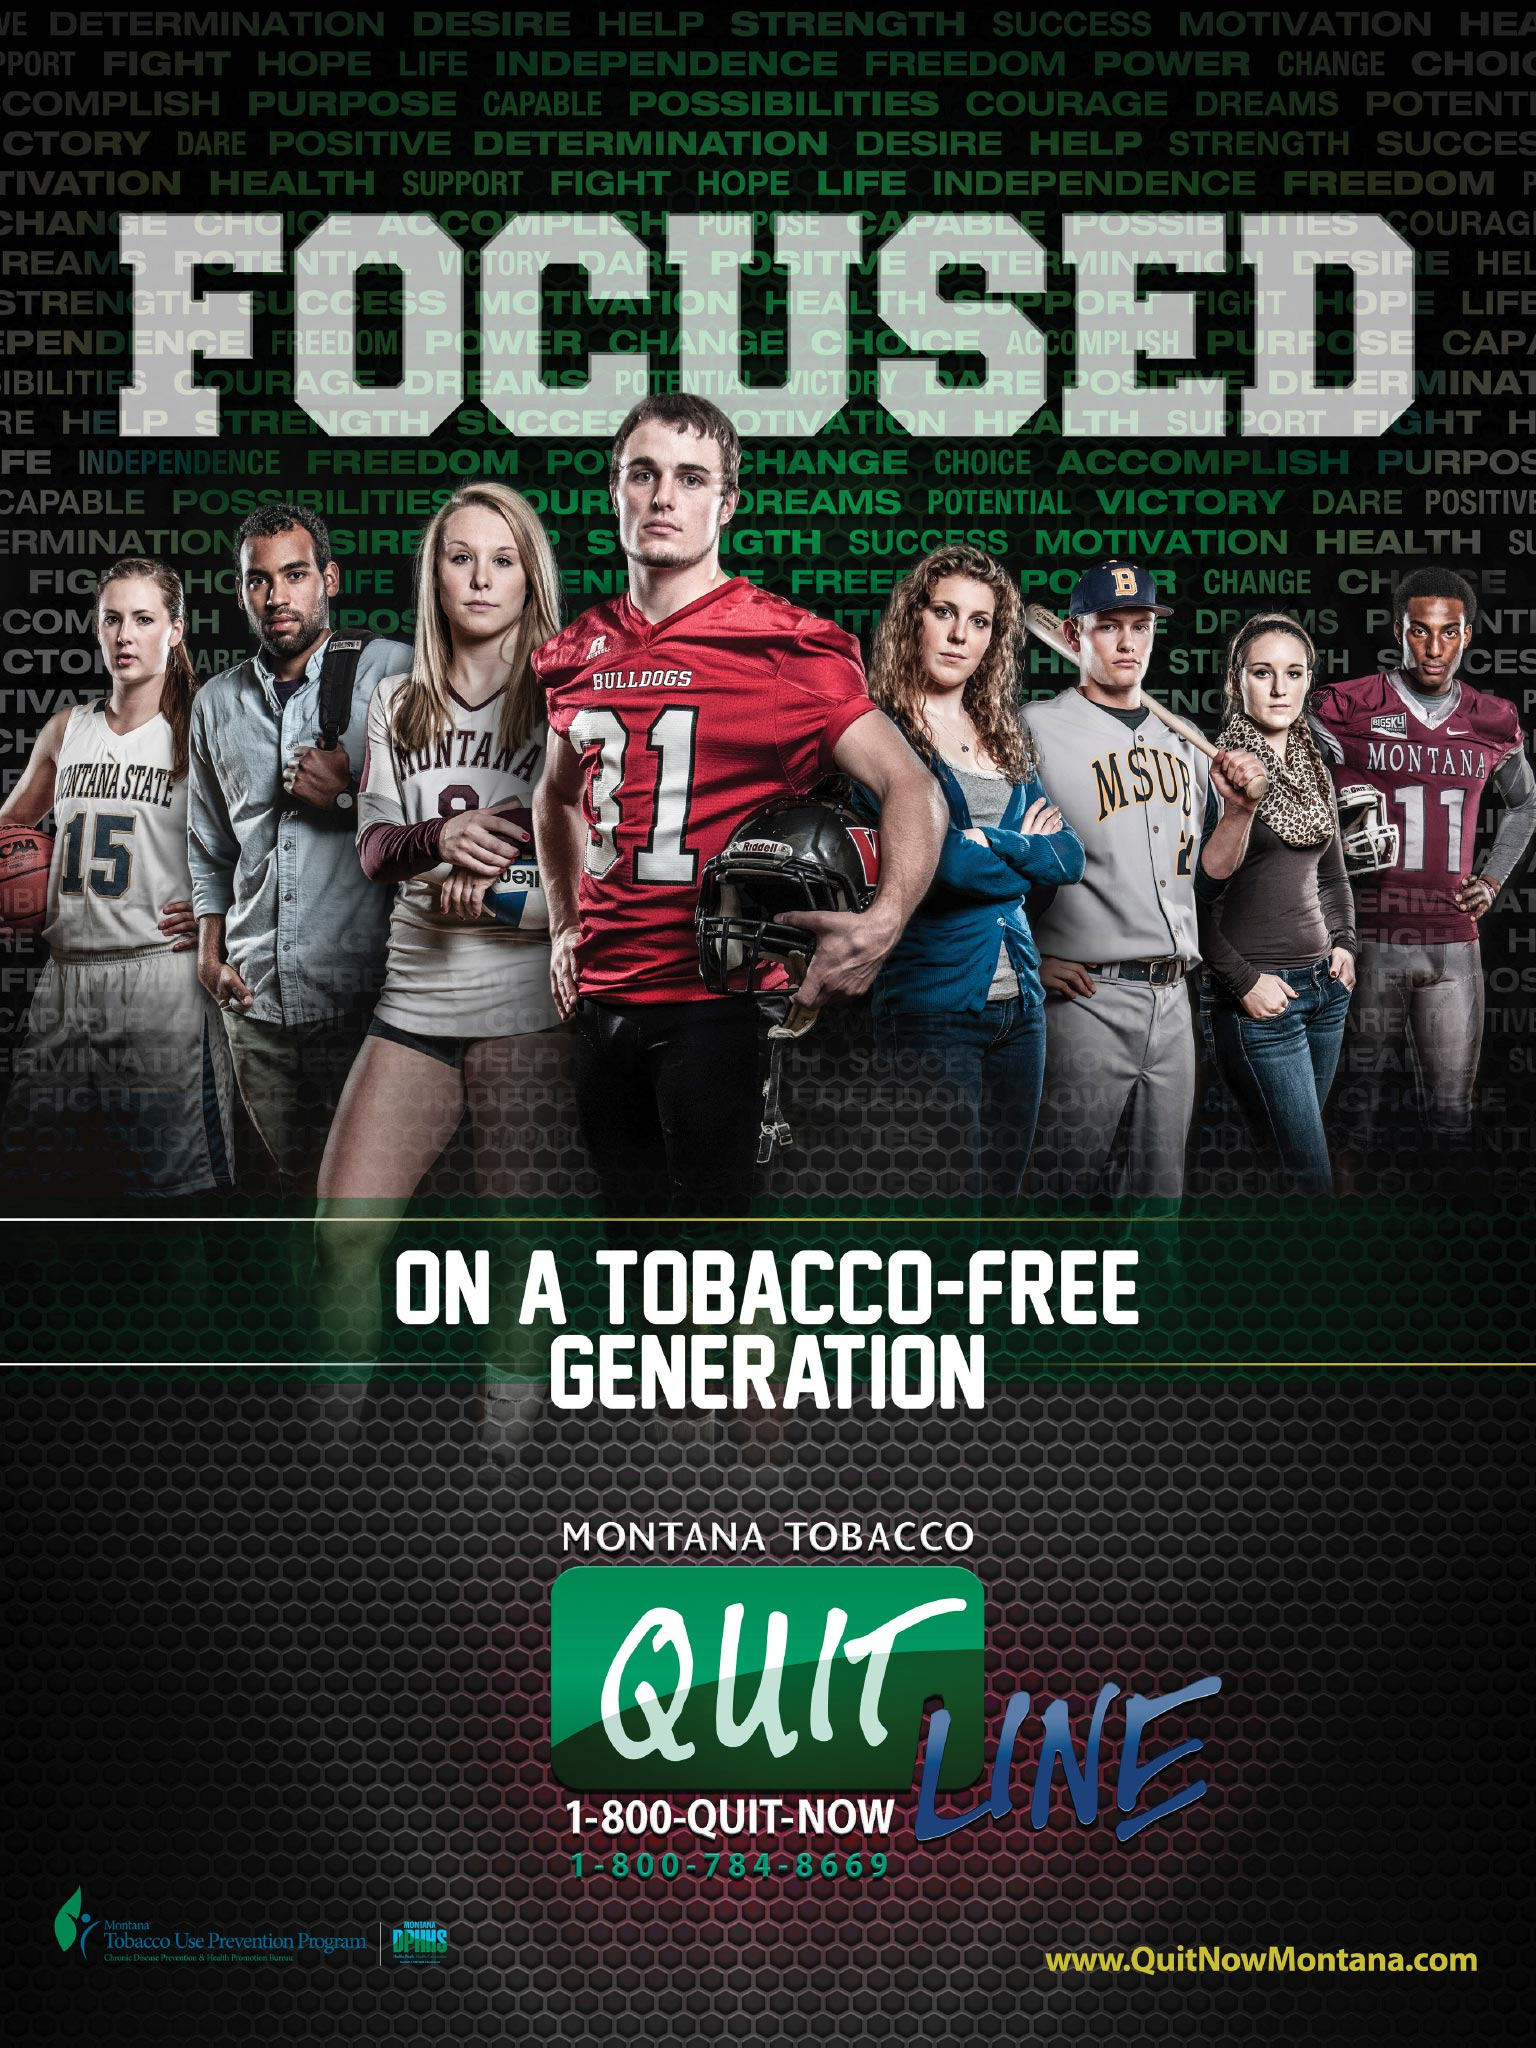 Montana Tobacco Use Prevention Program: College Athletics Poster